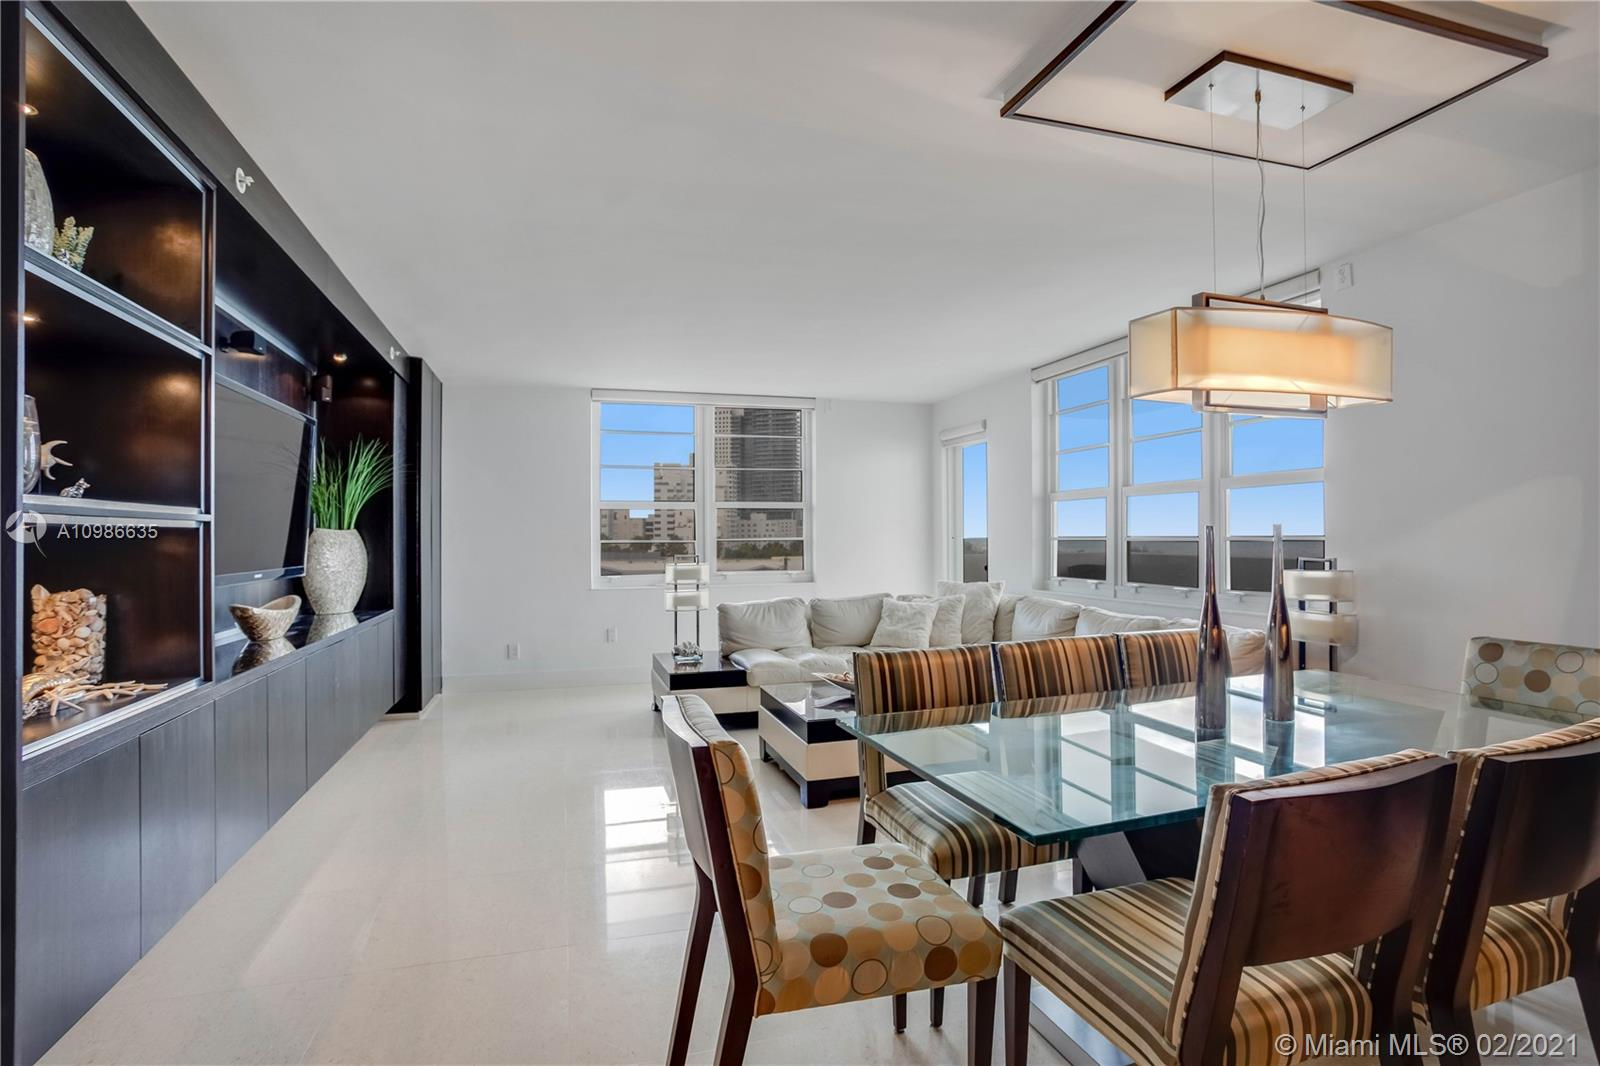 The Decoplage is an oceanfront condo Located on famous Lincoln Rd in the heart of Miami Beach, steps away from restaurants and shops. Next door to the Ritz-Carlton Hotel. This large 2 bed/2ba corner residence offers fantastic direct ocean views. The kitchen opens to a large living-dining room with direct ocean views. The balcony overlooking the beach and ocean. Built-ins, spacious Primary bedroom & great details throughout.  Offered fully furnished. The Building has a short term rental policy of 30 days and offers great amenities.